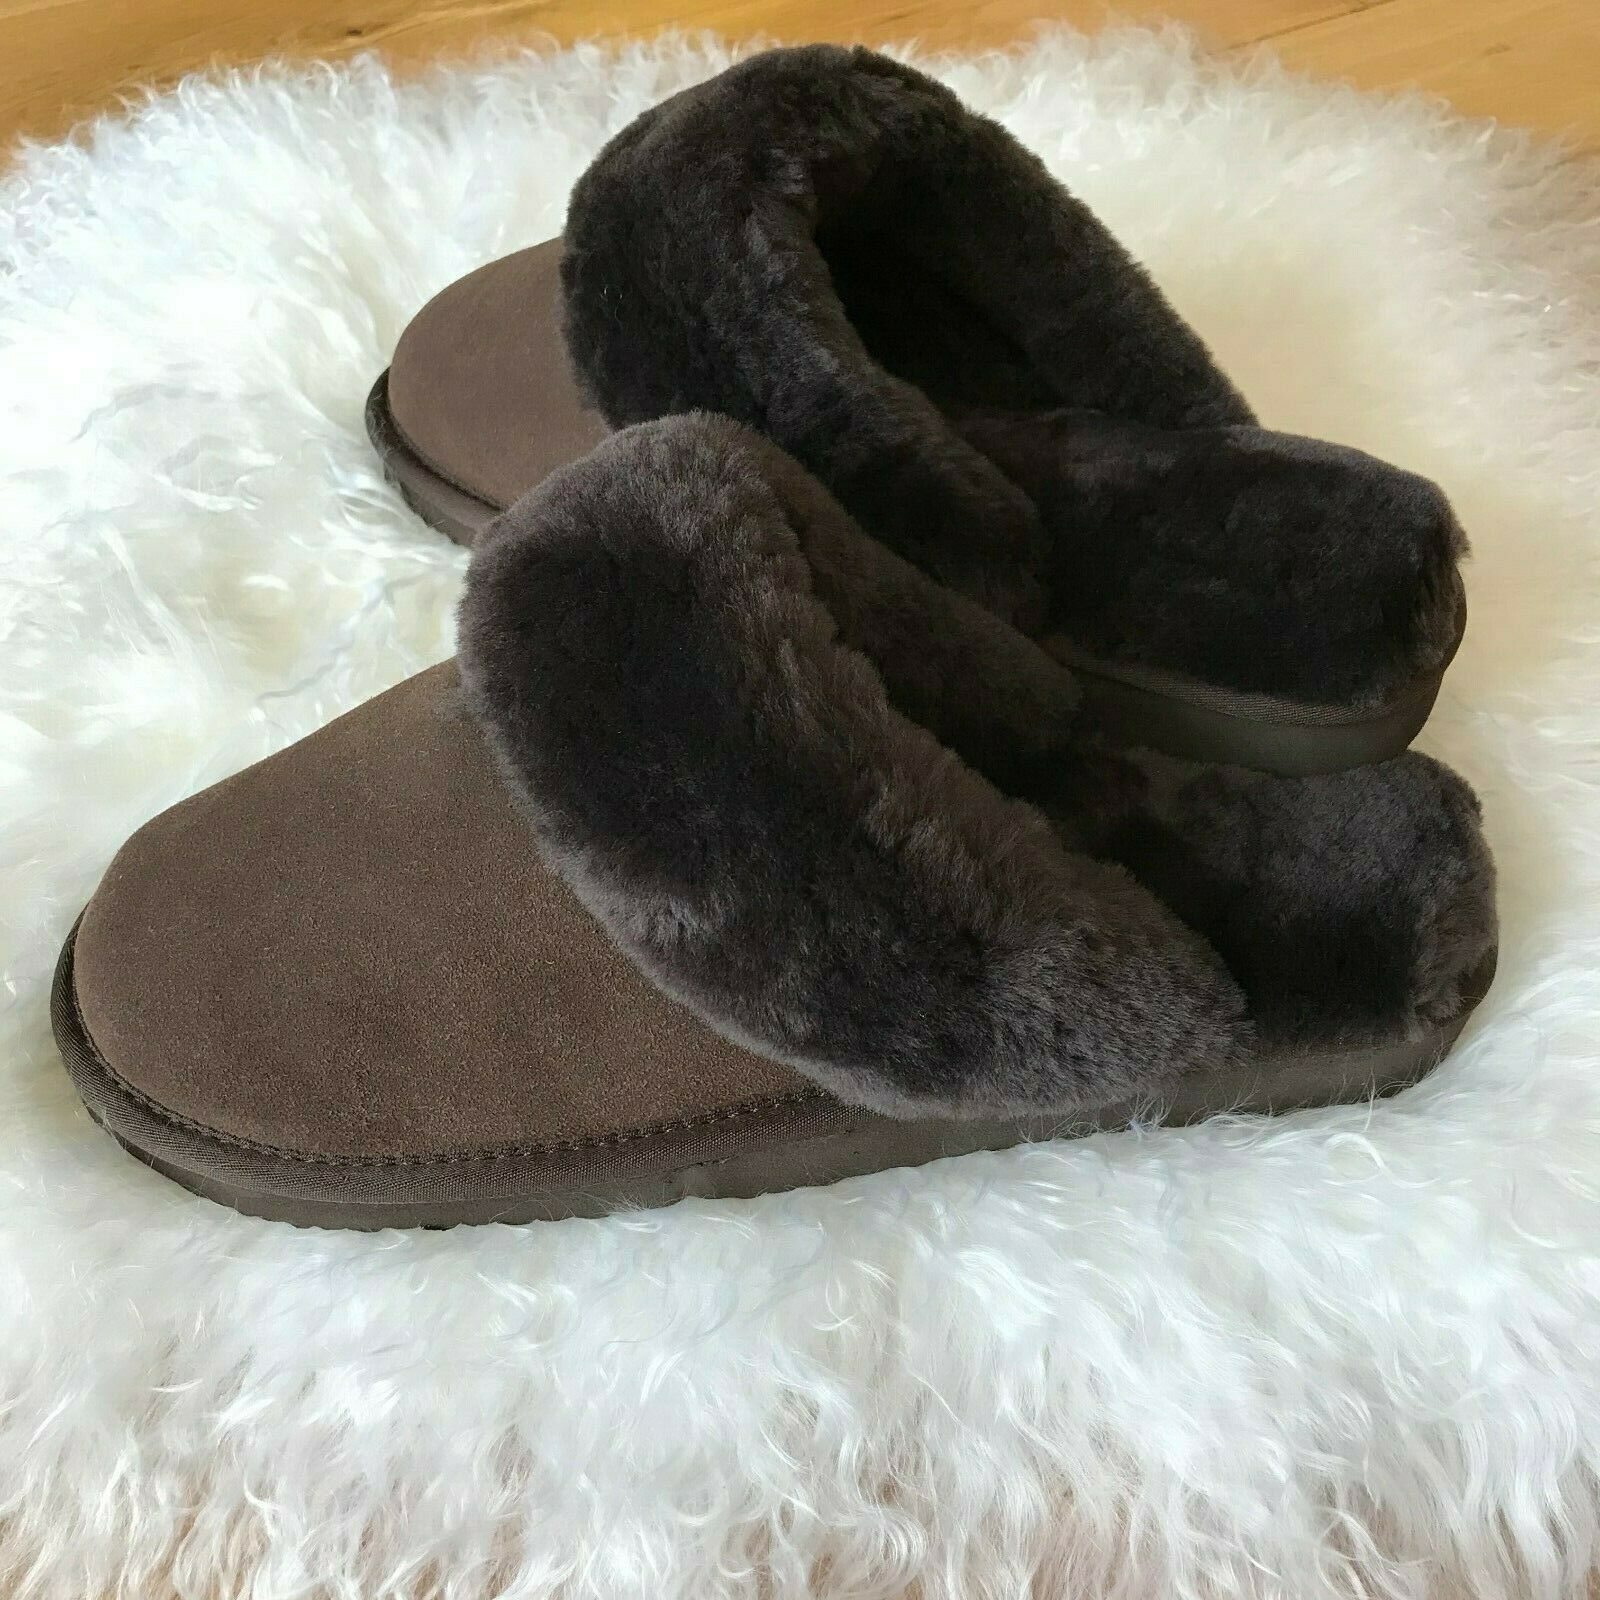 CO-SY Mens Genuine Leather Sheepskin Slip On Shearling Mule Slippers